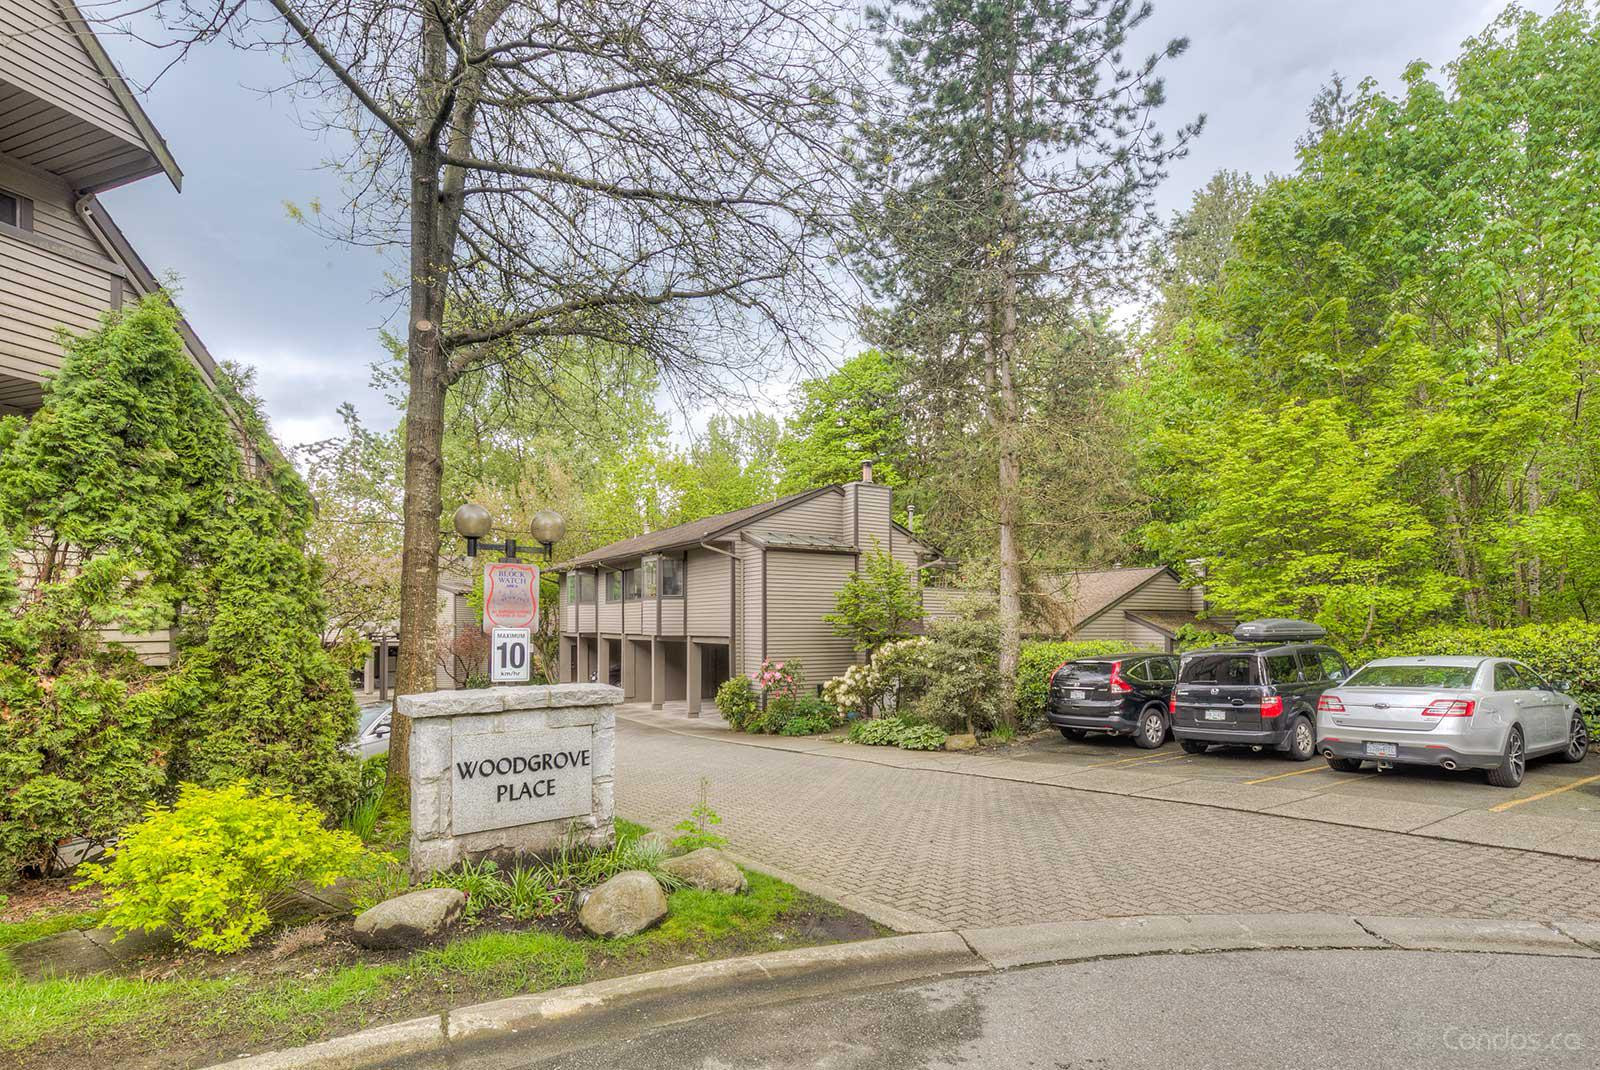 Simon Fraser Village - Woodgrove Place at 8570 Woodgrove Pl, Burnaby 0